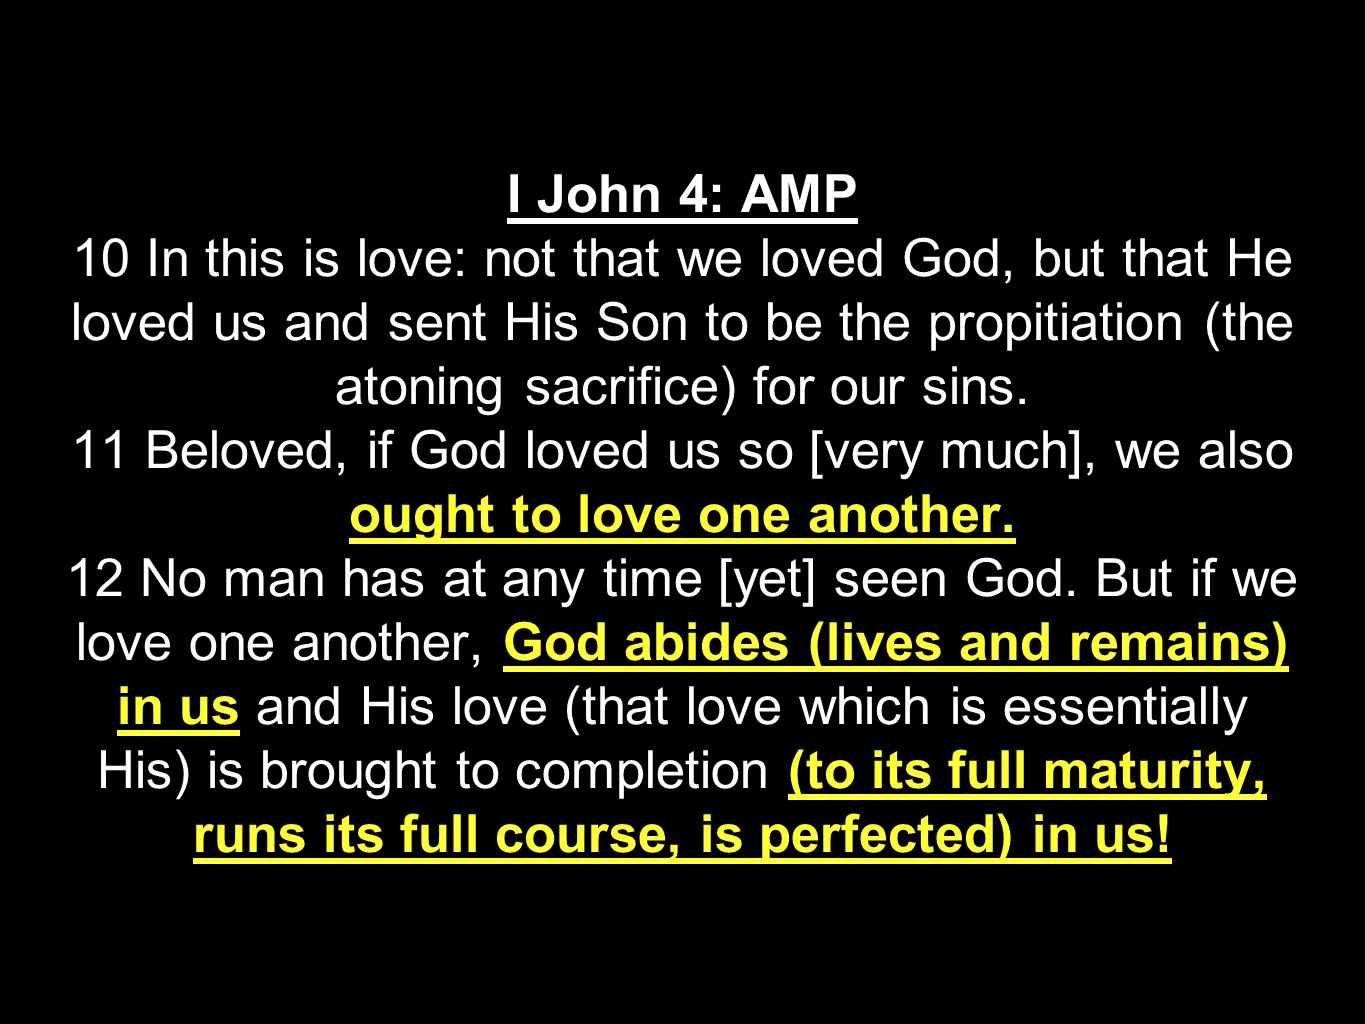 I John 4: AMP 10 In this is love: not that we loved God, but that He loved us and sent His Son to be the propitiation (the atoning sacrifice) for our sins.